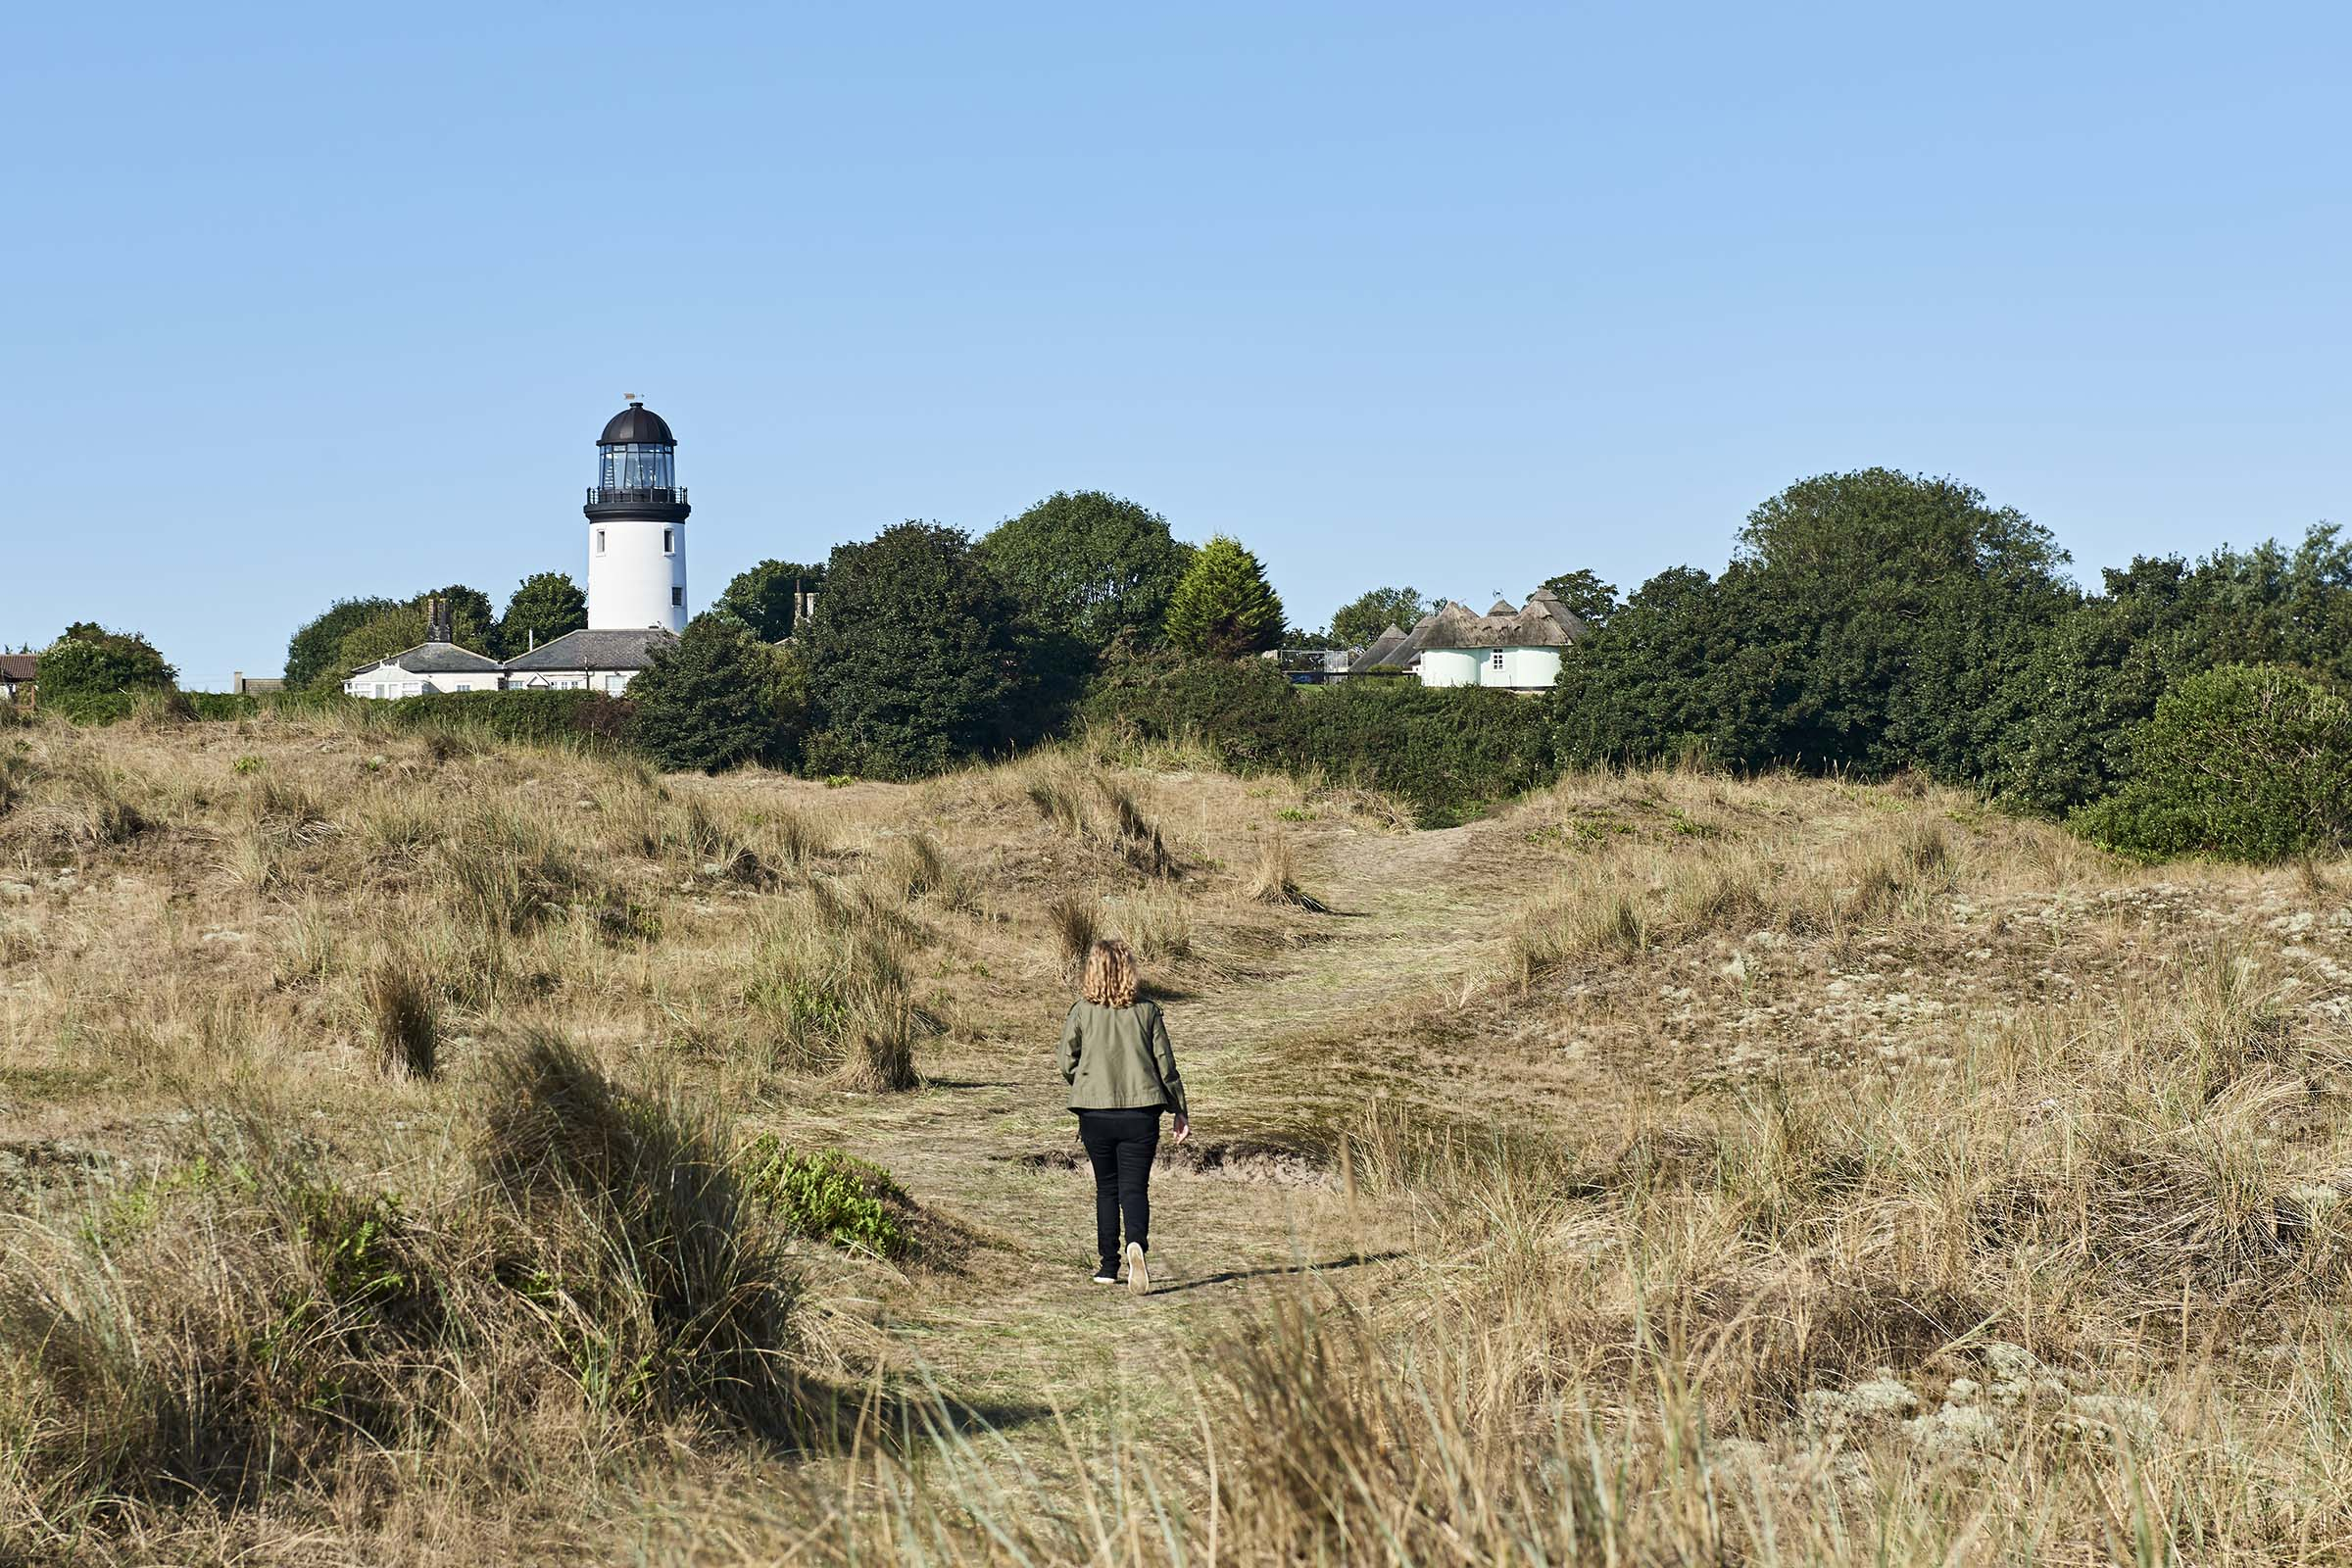 The restored Lighthouse is set back from the shoreline across the sand dunes.